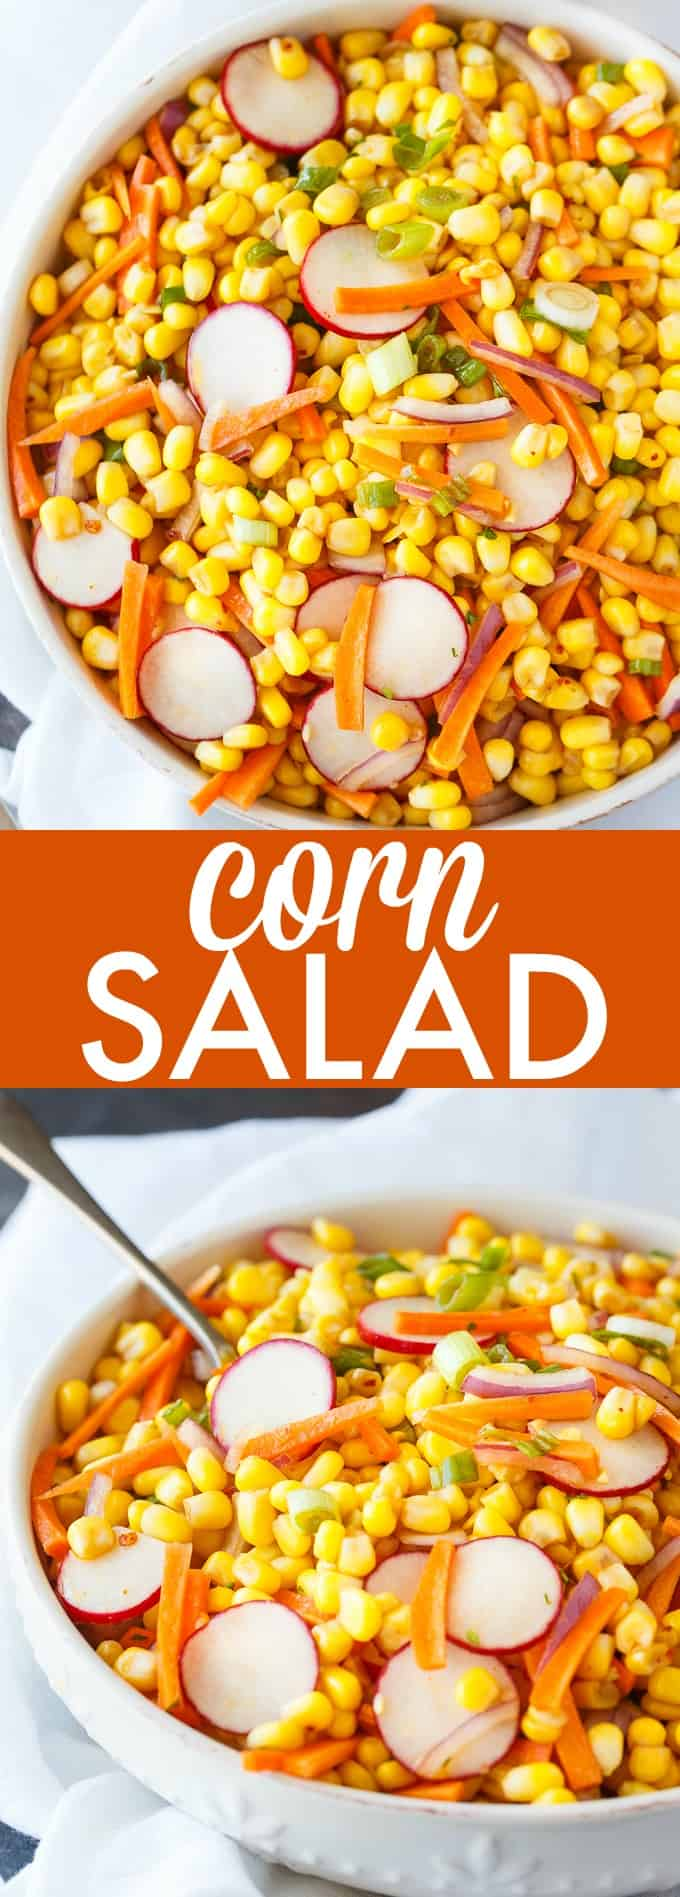 Corn Salad - Bright, colorful and tasty! Serve this delicious summer salad recipe at your BBQs and outdoor parties.